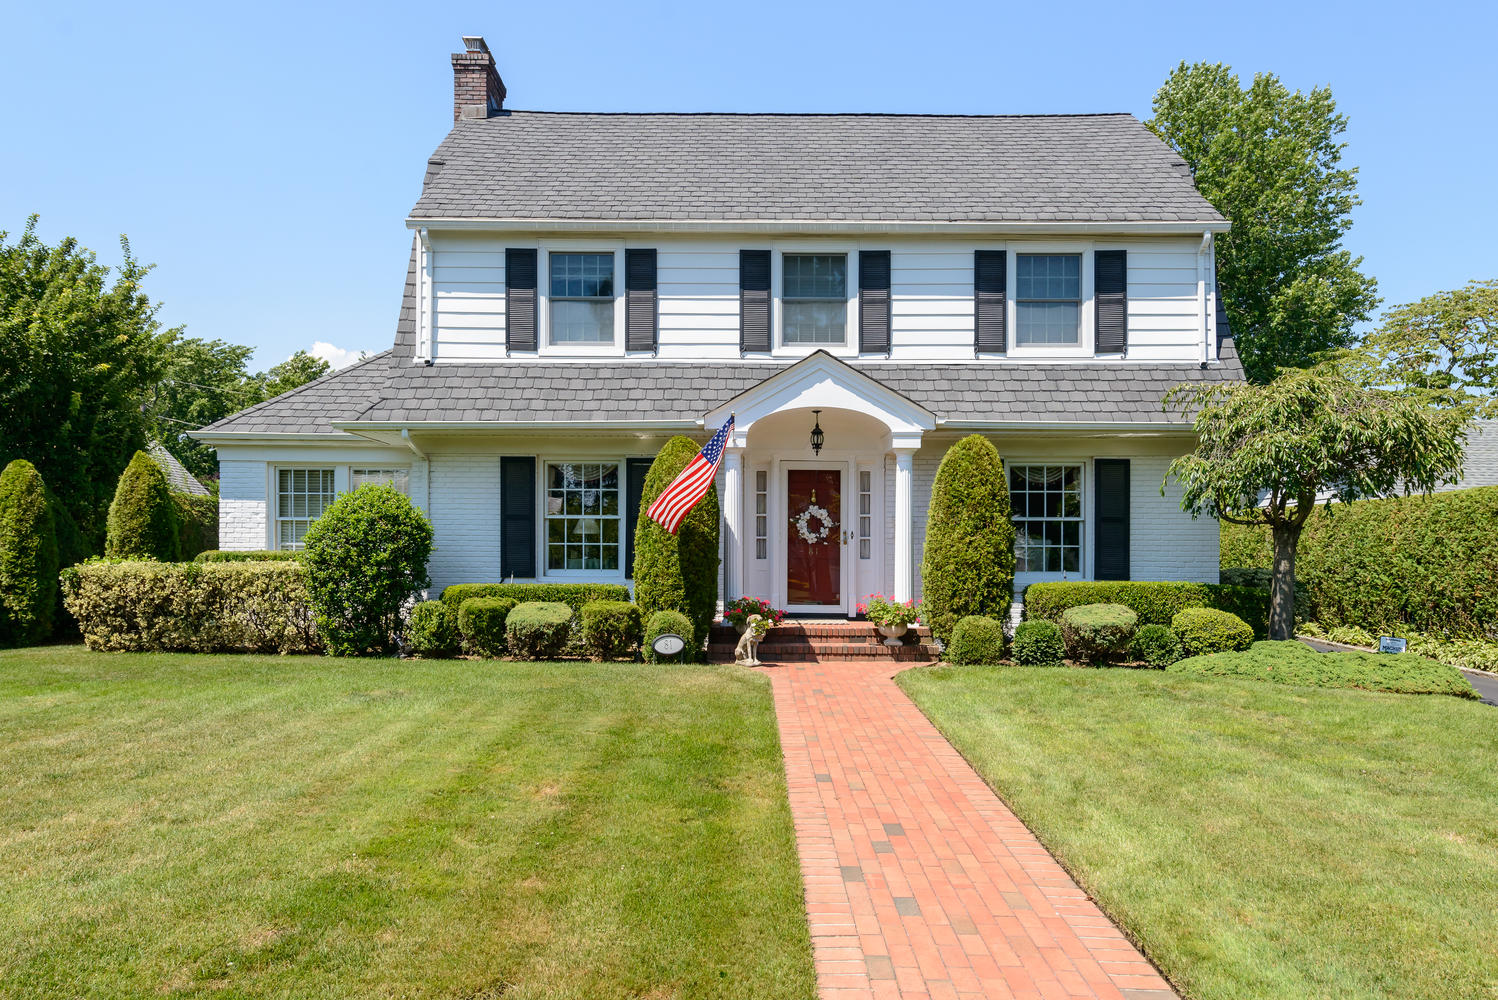 Single Family Home for Sale at Colonial 81 Brook St Garden City, New York 11530 United States